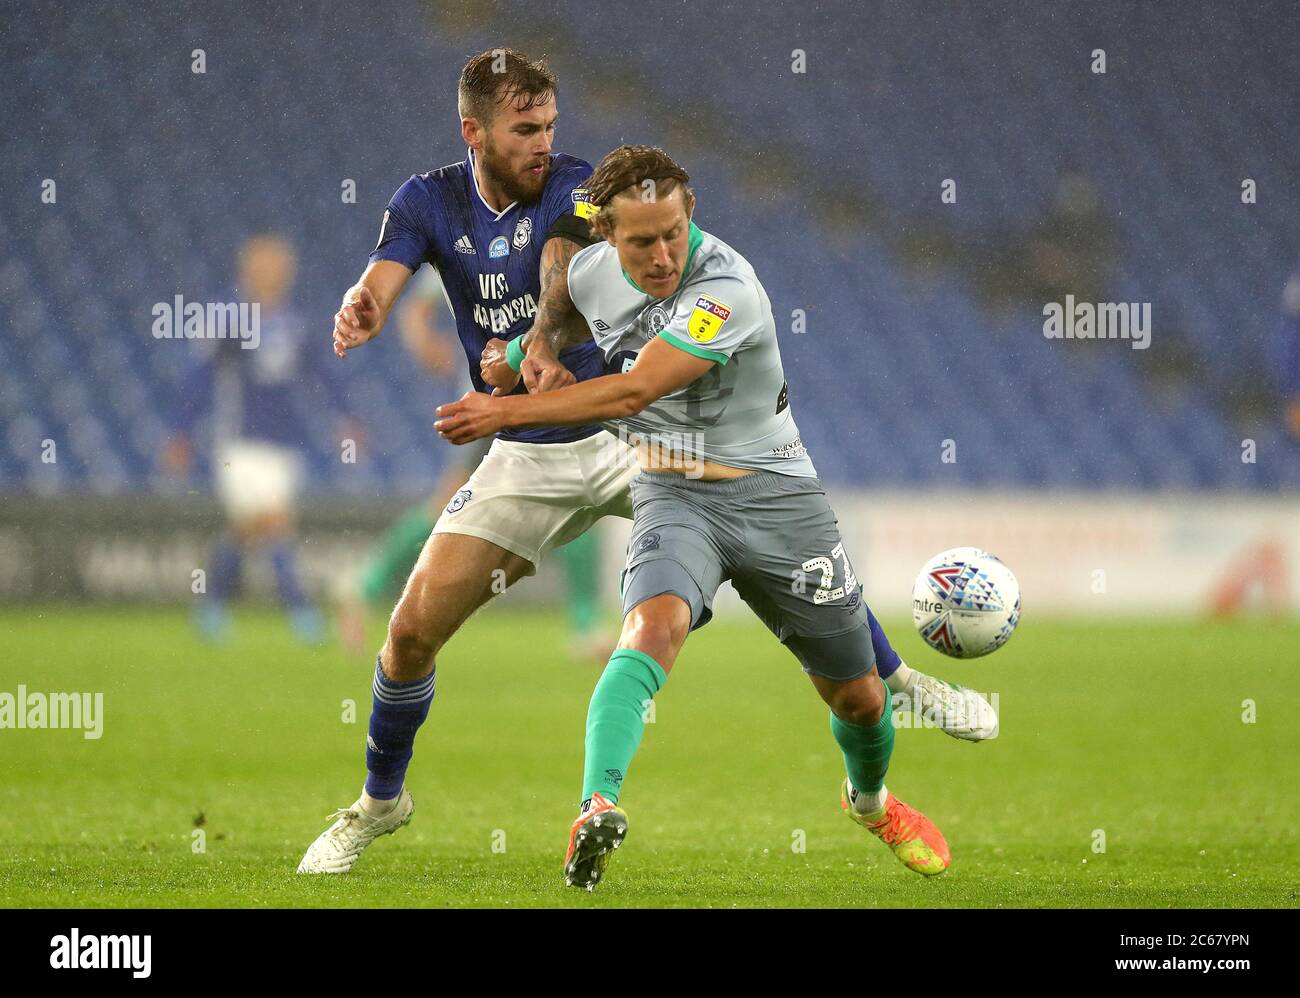 Cardiff City S Joe Ralls Left And Blackburn Rovers Lewis Holtby Battle For The Ball During The Sky Bet Championship Match At The Cardiff City Stadium Stock Photo Alamy